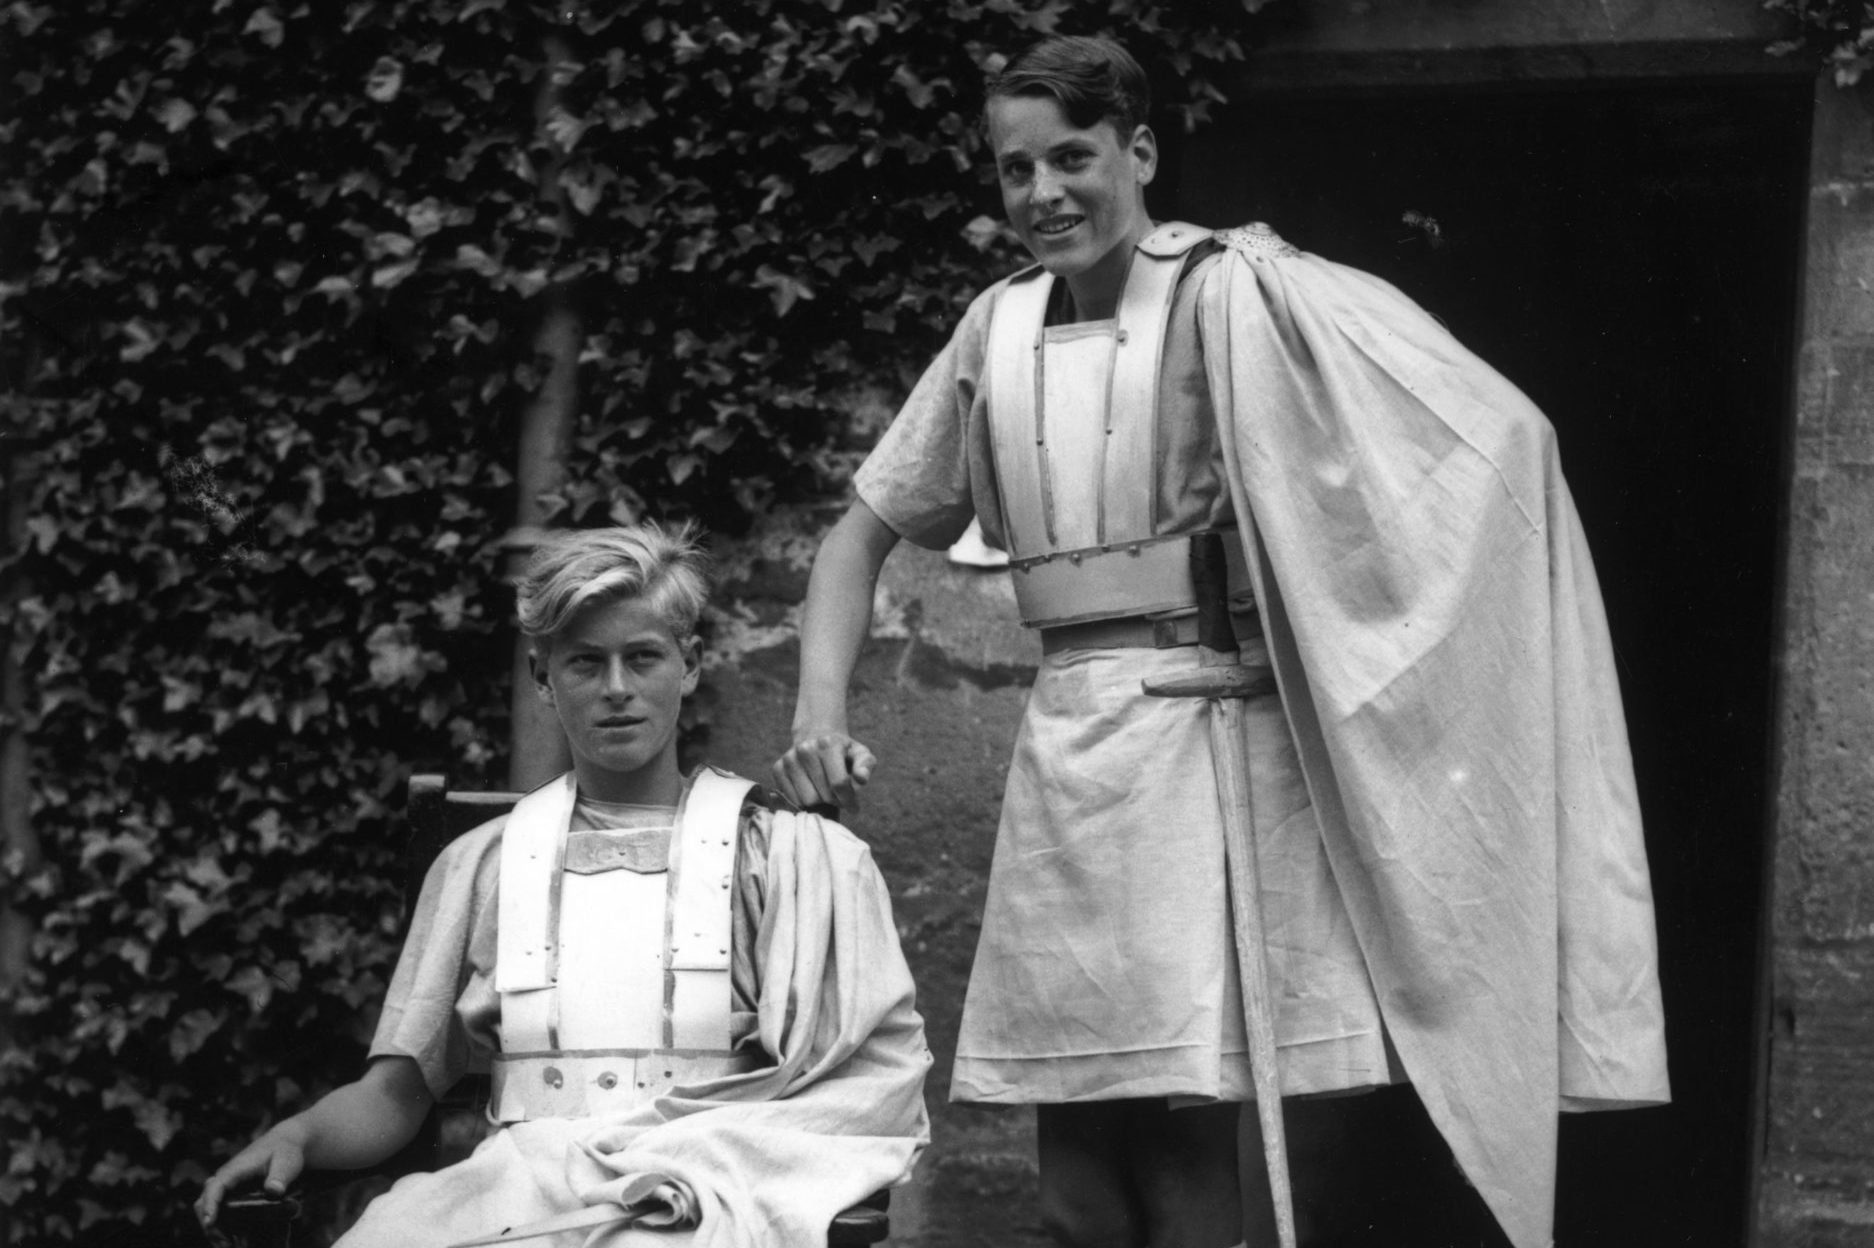 Young Prince Philip in a school play